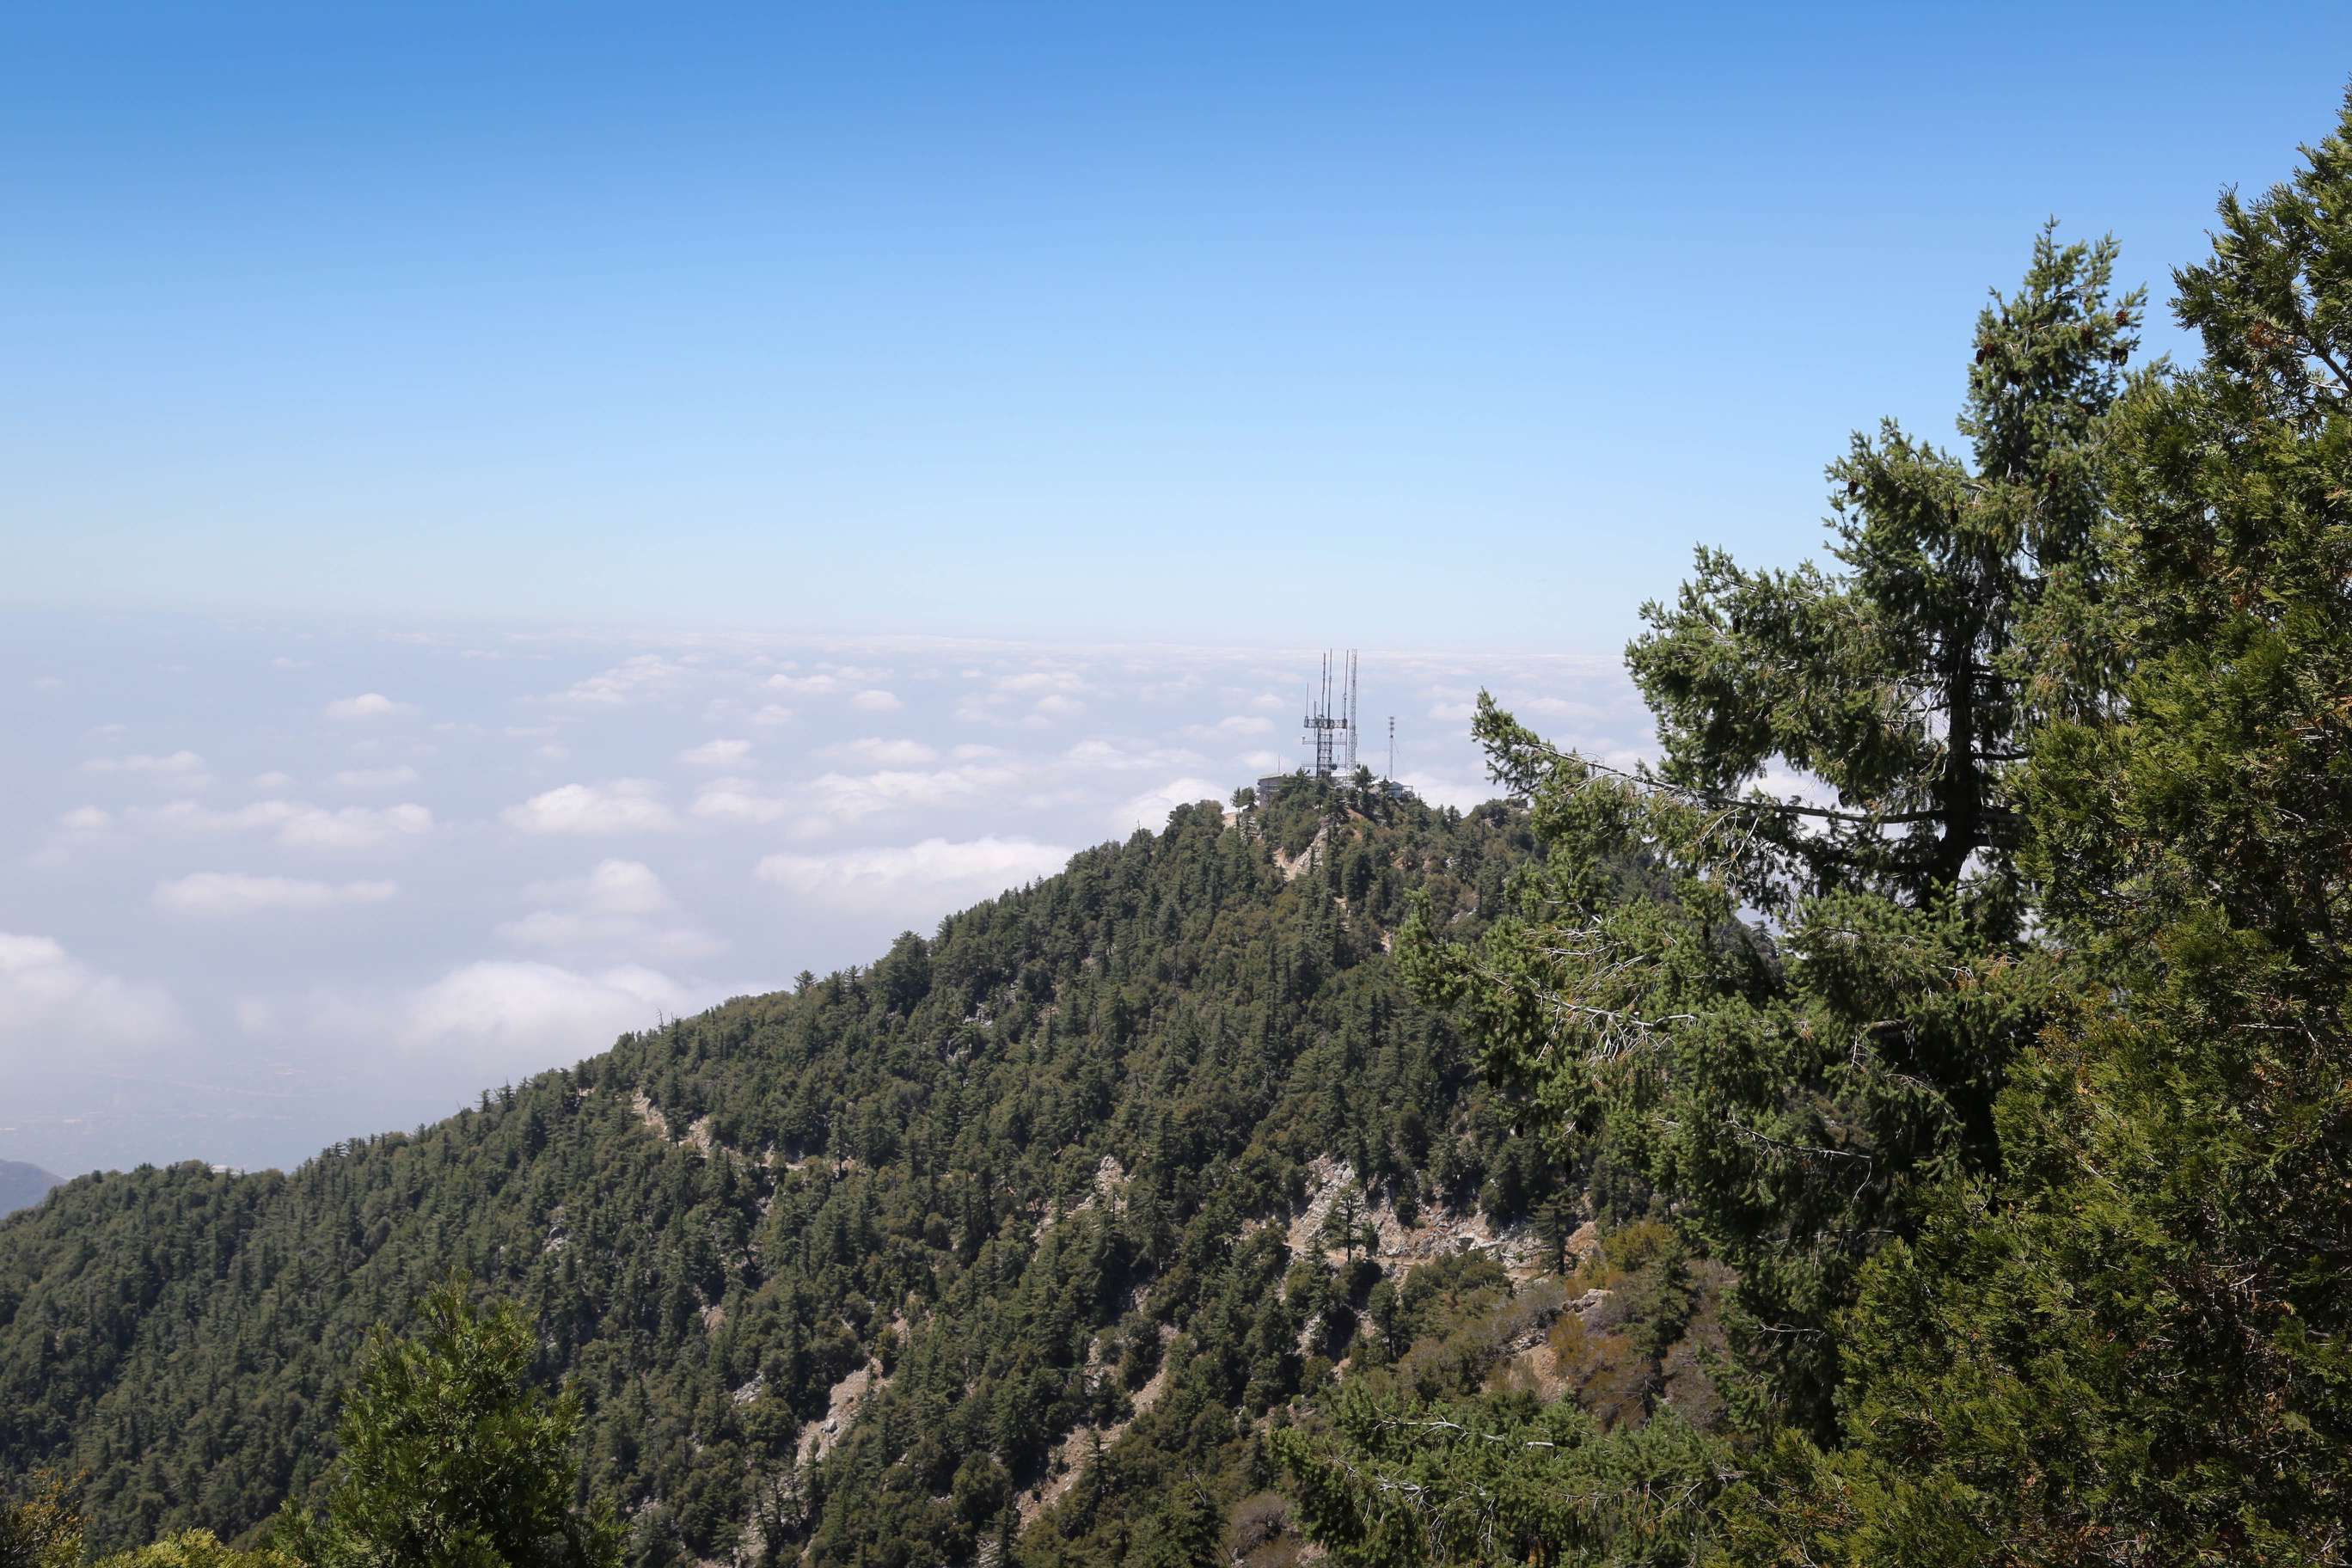 The San Garbriel Valley, and Los Angeles beyond, are obscured by a morning blanket of clouds atop Mt. Wilson.